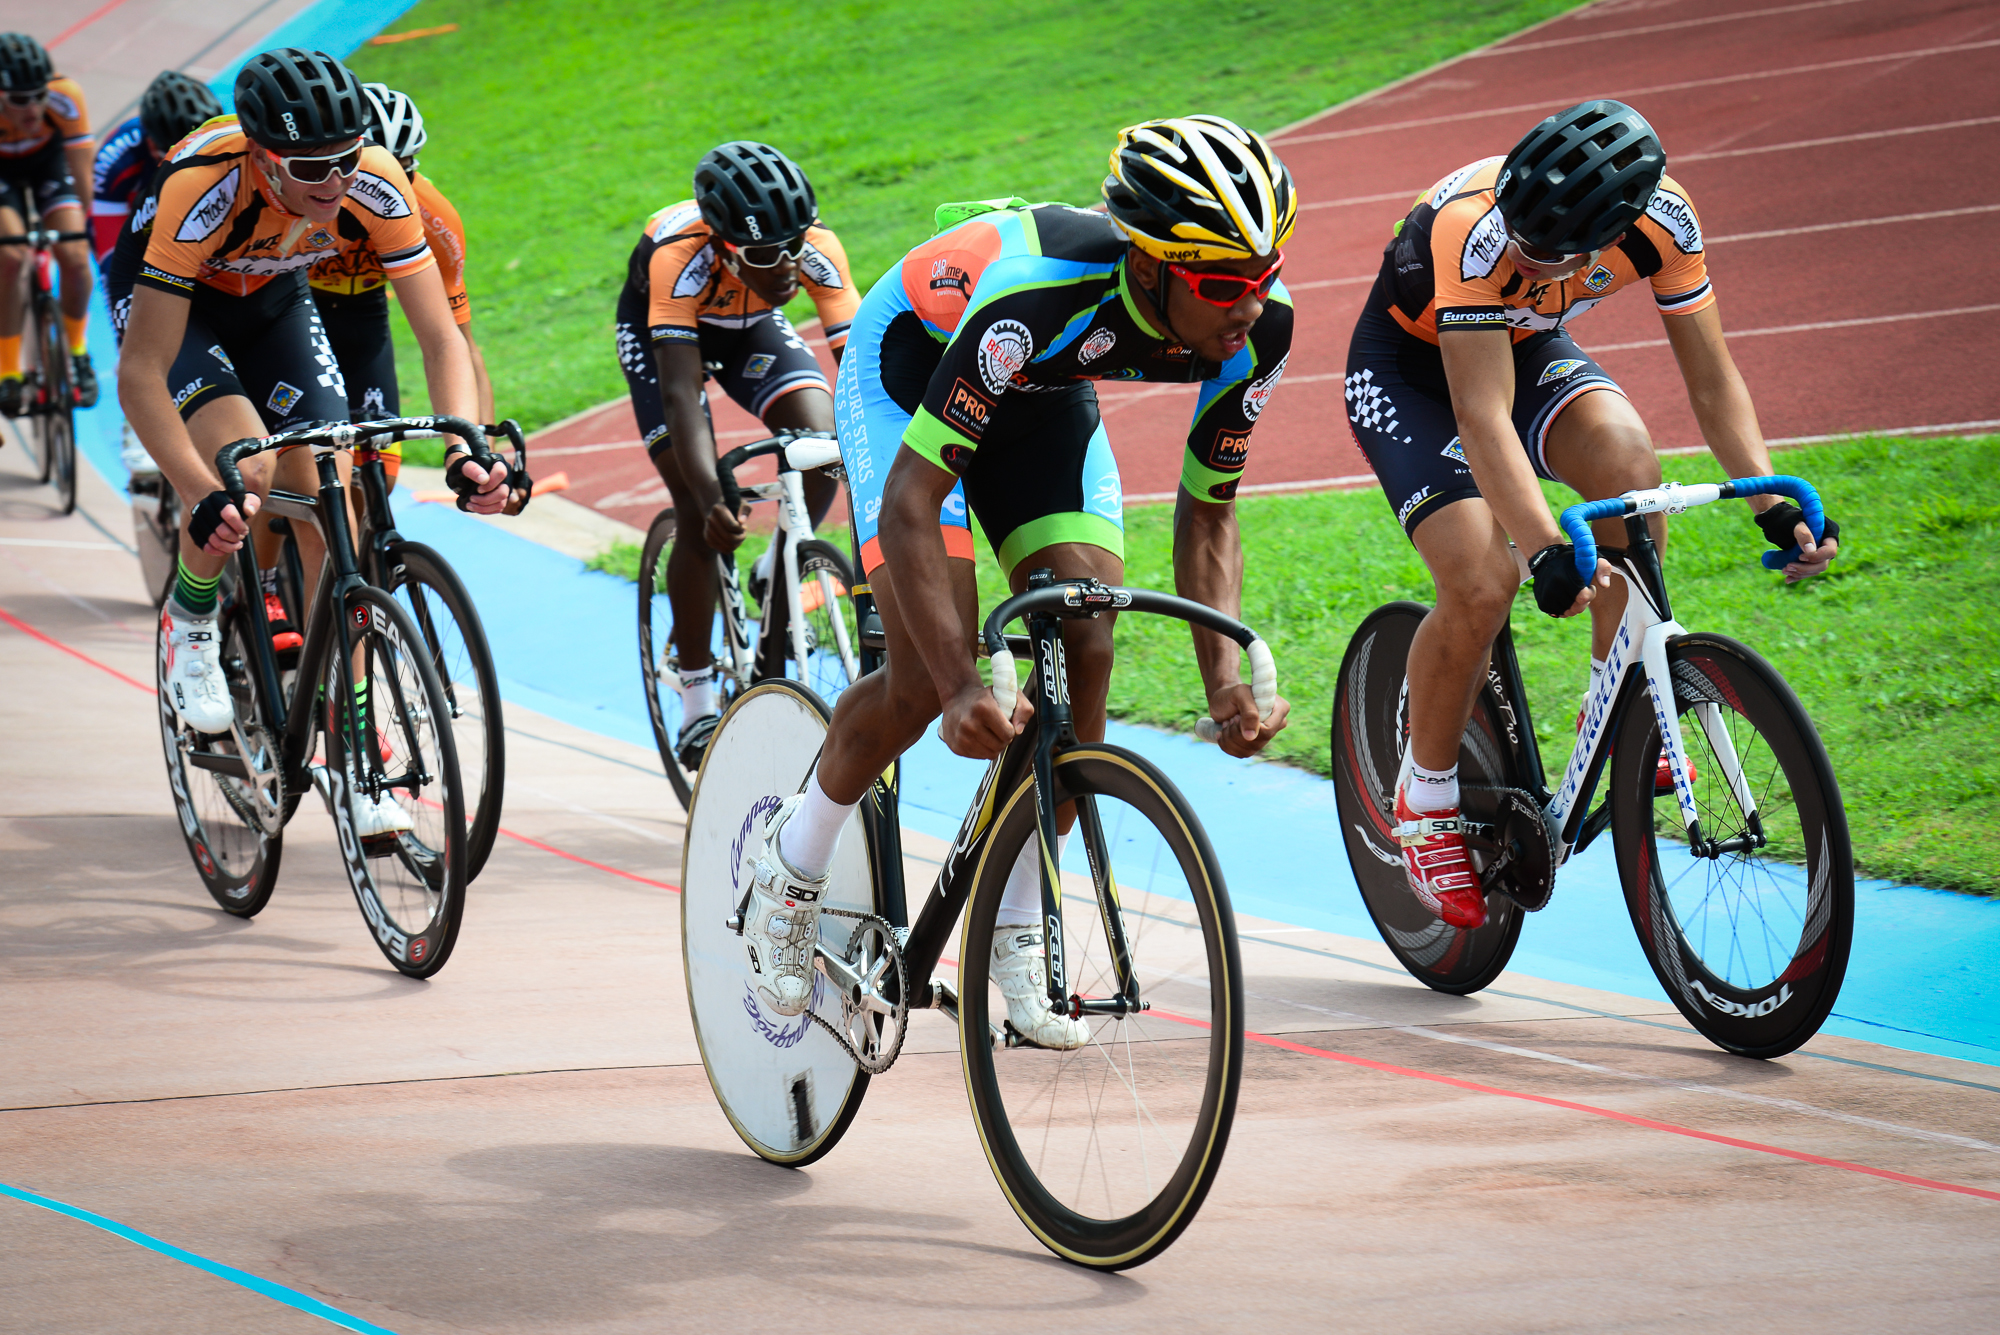 Racing action in the Junior Men's Points race on day four of the 2016 South African Track and Para-cycling Championships at the Westbourne Oval in Port Elizabeth on Thursday 31 March. Photo credit: Darren Goddard